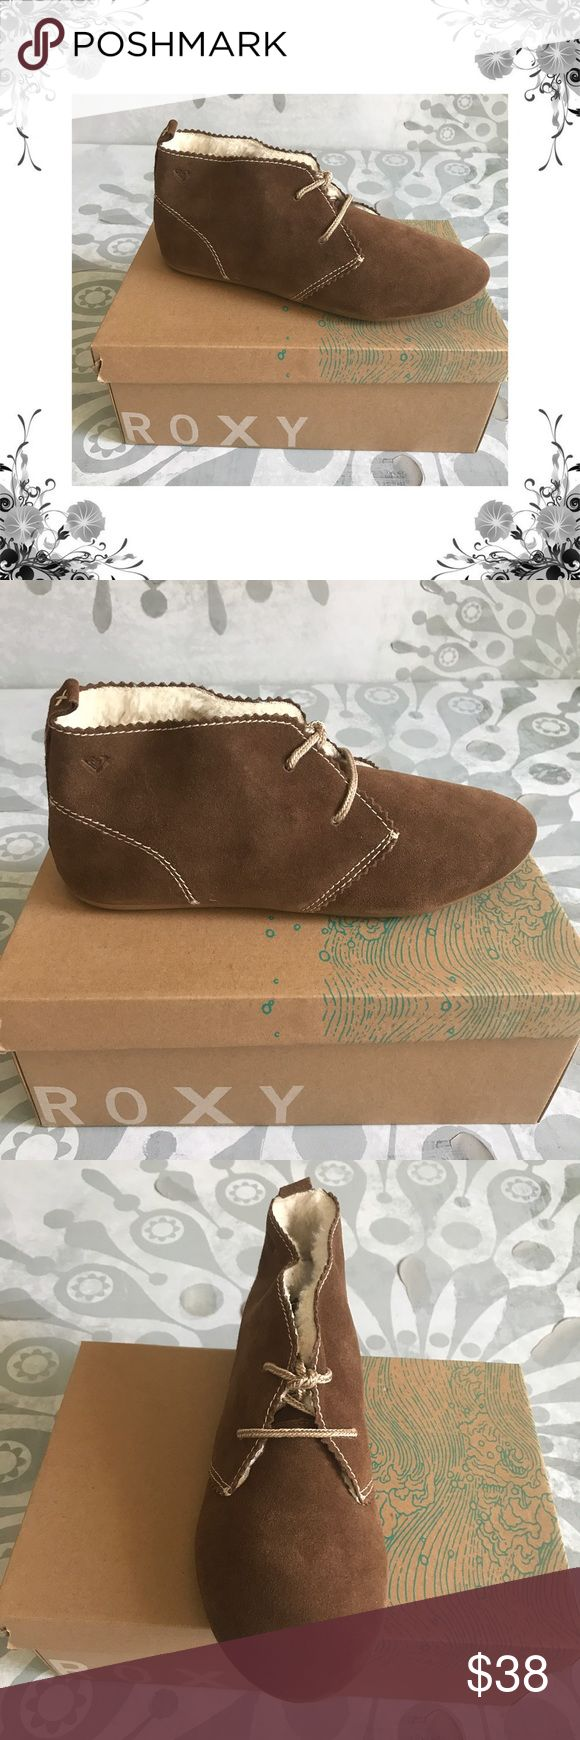 """Sz 8 Roxy 'Montauk' Brown Suede Loafers/Moccasins These Womens Roxy Montauk Loafers are guaranteed authentic. They're crafted with Leather/TPR, and the closure is Slip On. Manufacturer Color is Tan. New with box. Heel Height is approx 1/4"""". Platform Heightis 1/4"""". Fabric Type is Suede. Faux Fur Lined. Bundle for discounts! Thank you for shopping my closet! Roxy Shoes Moccasins"""